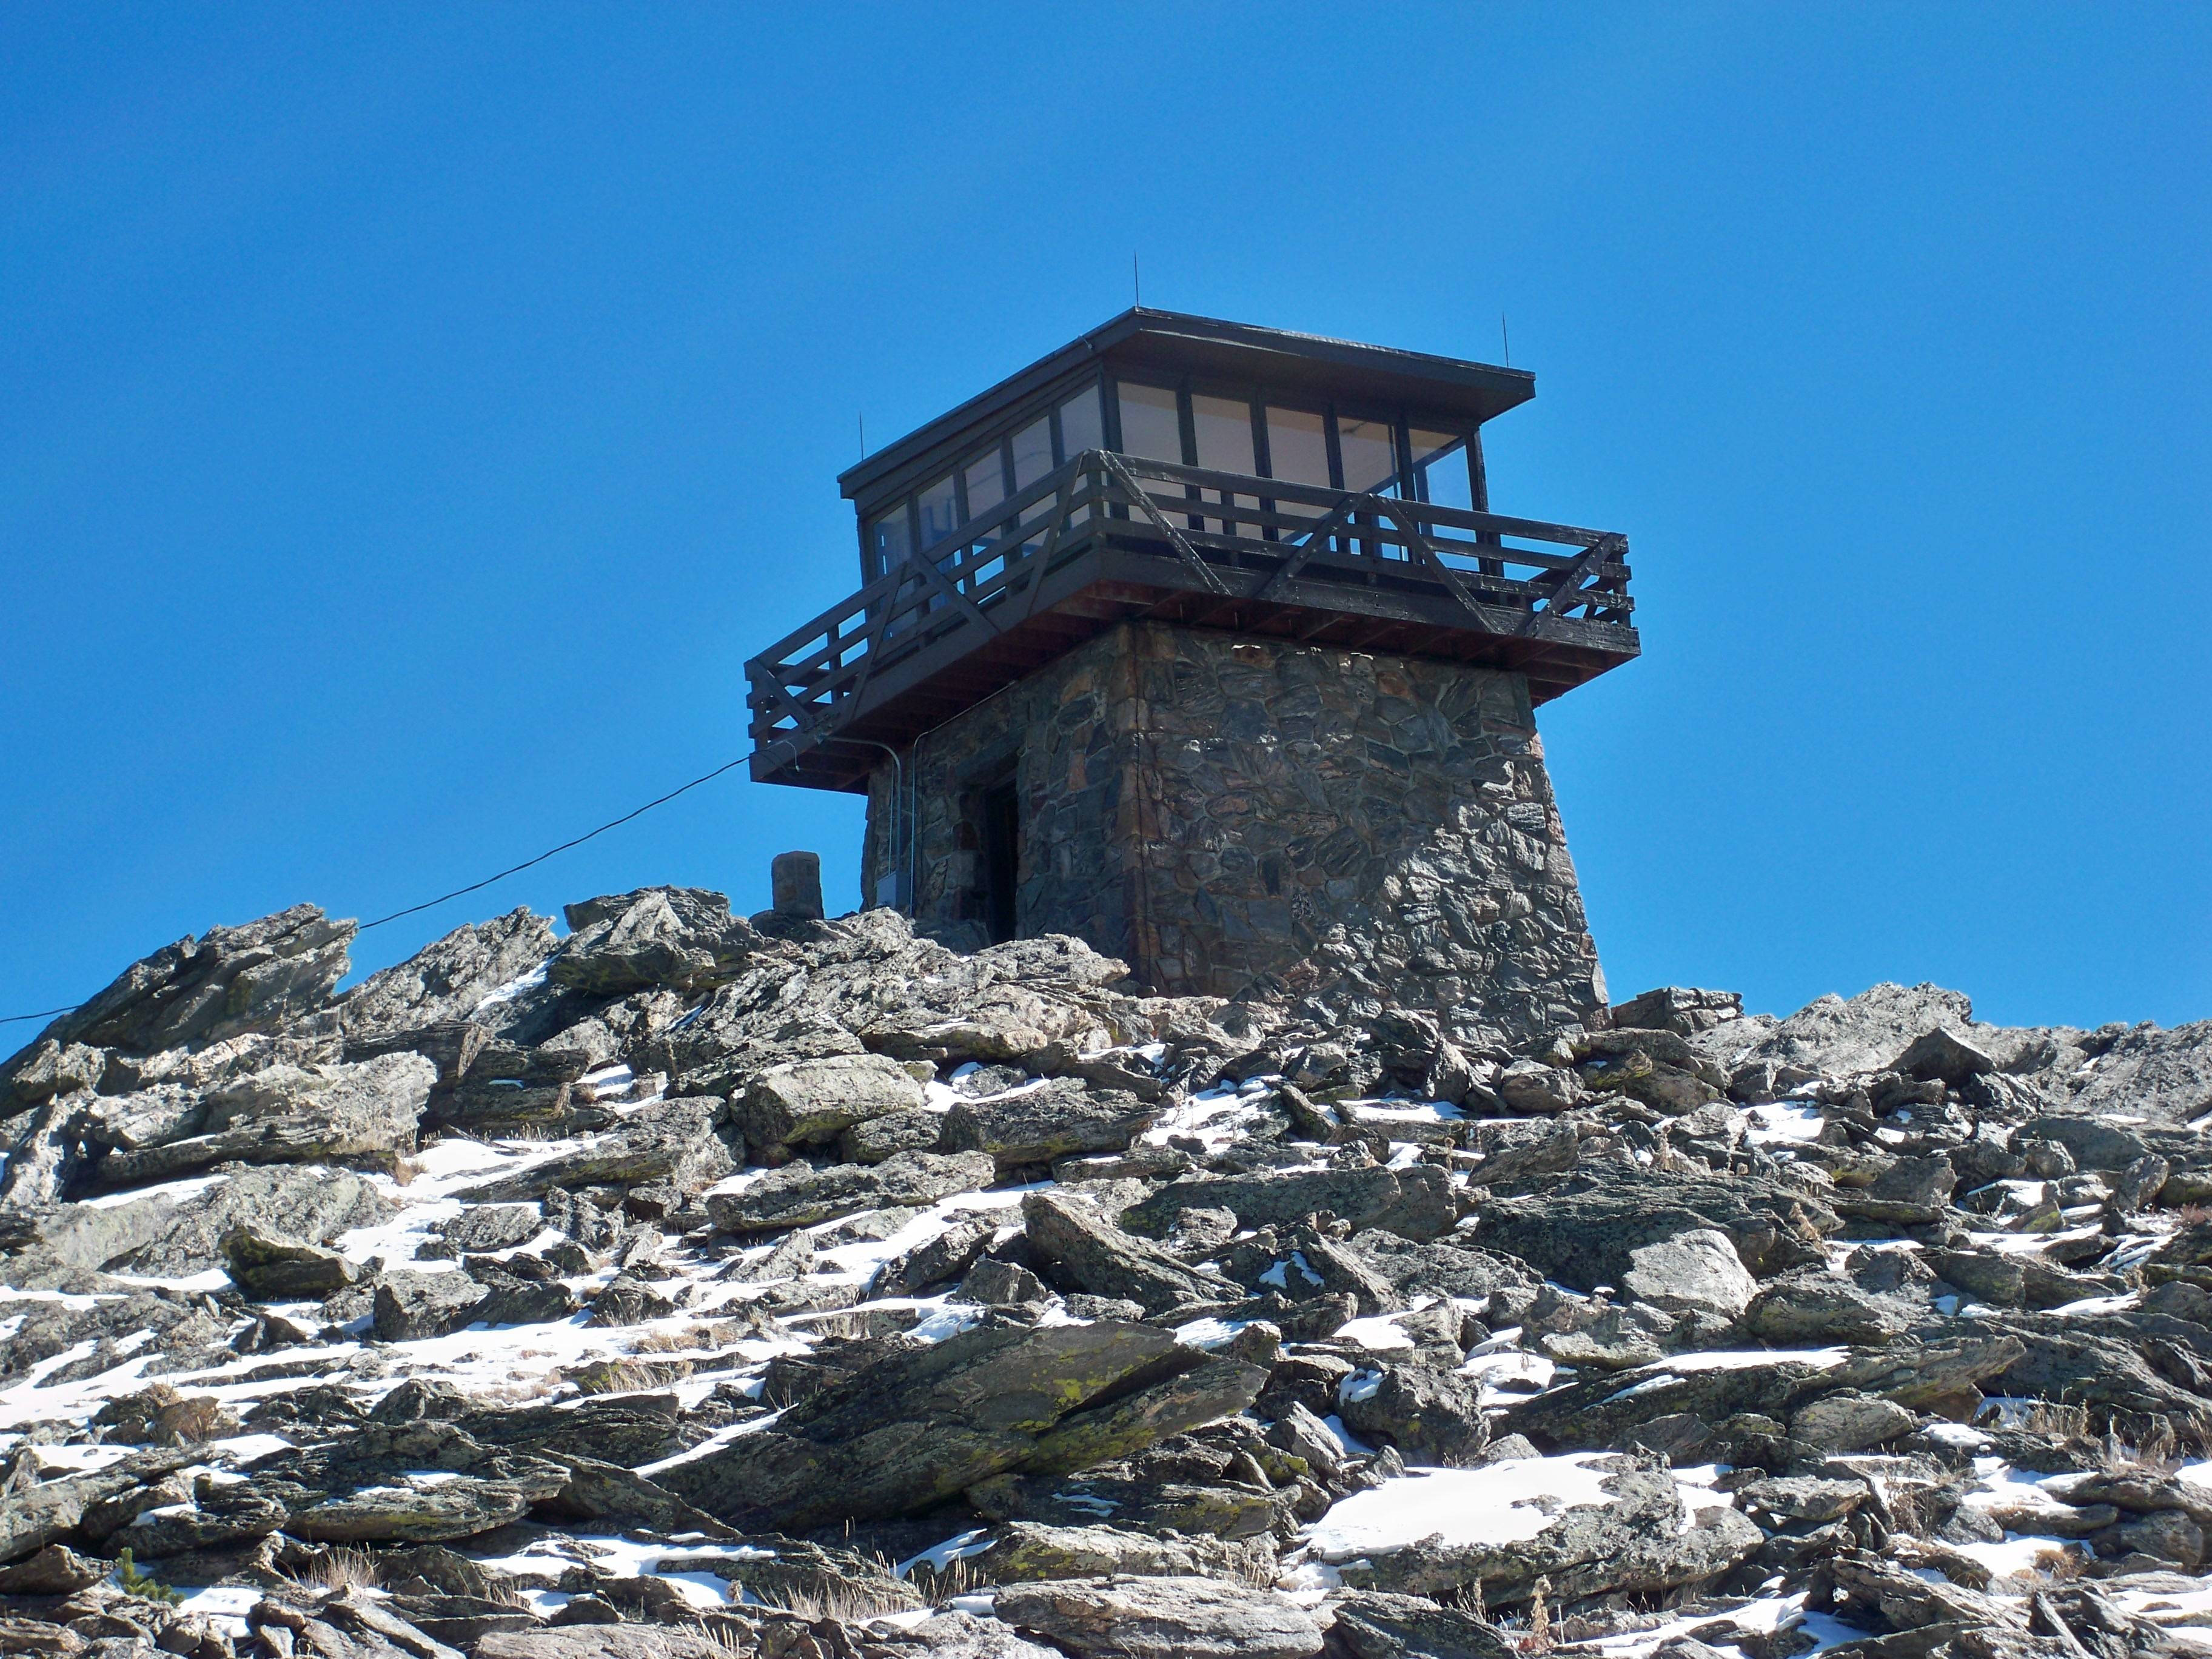 Squaw Moutain Fire Lookout building